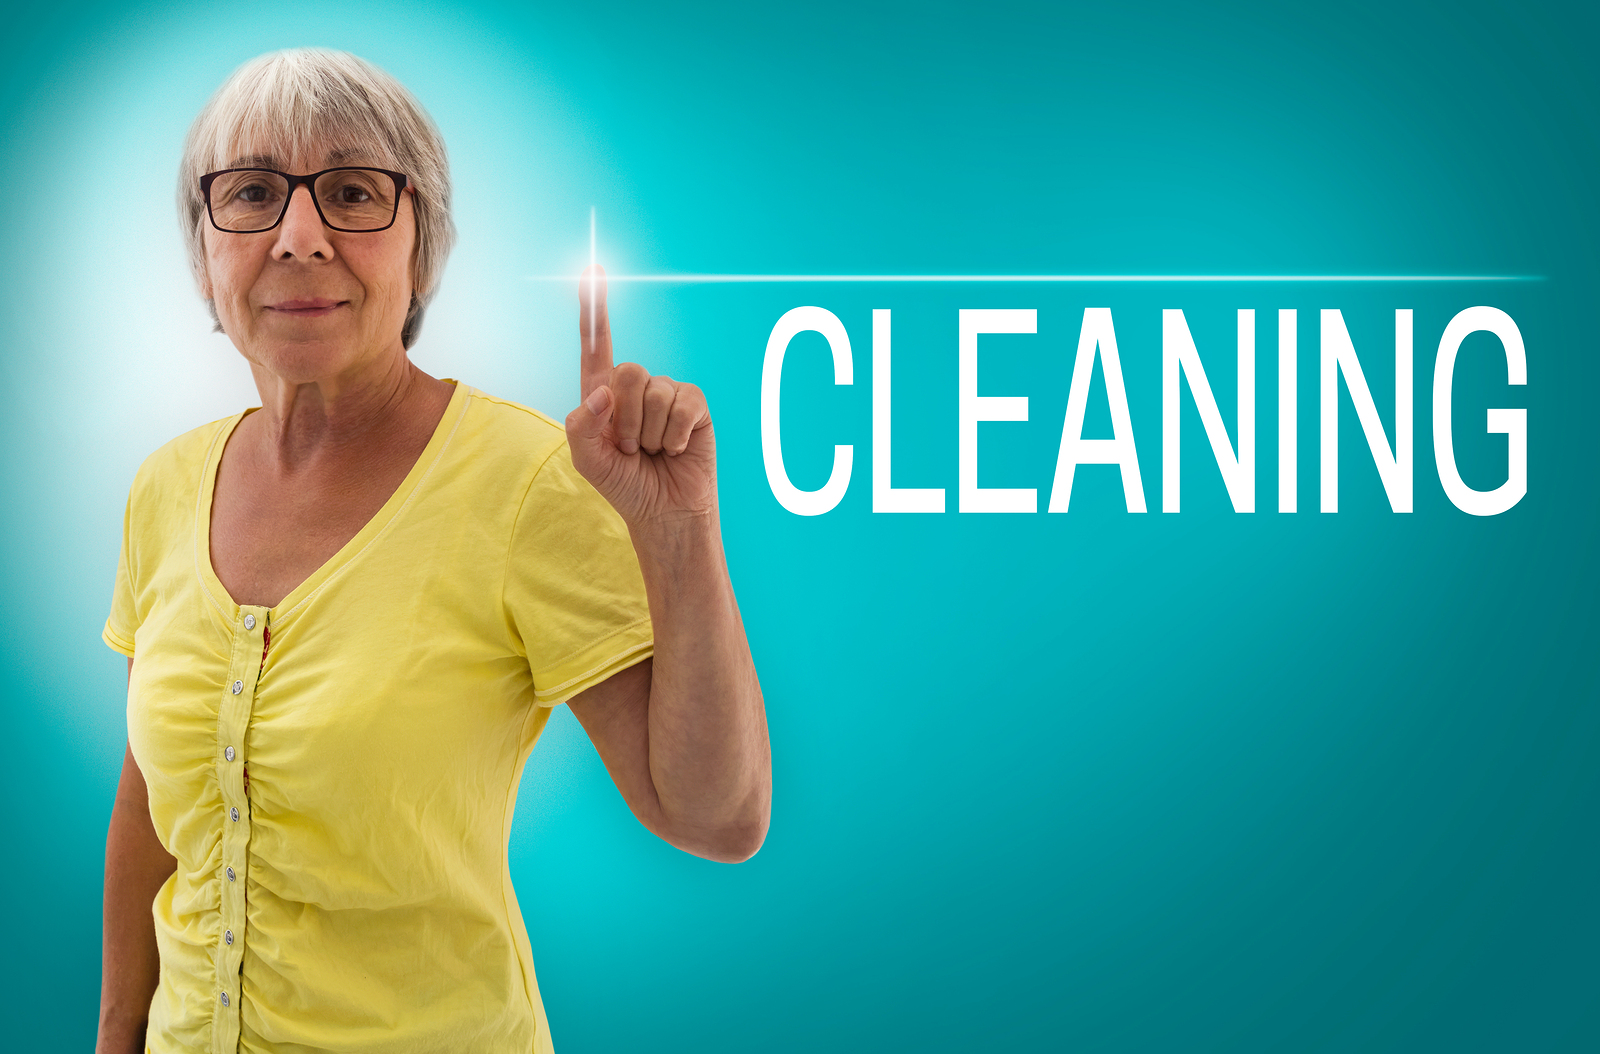 6 Non-Toxic Cleaning Tips from Our Grandmothers